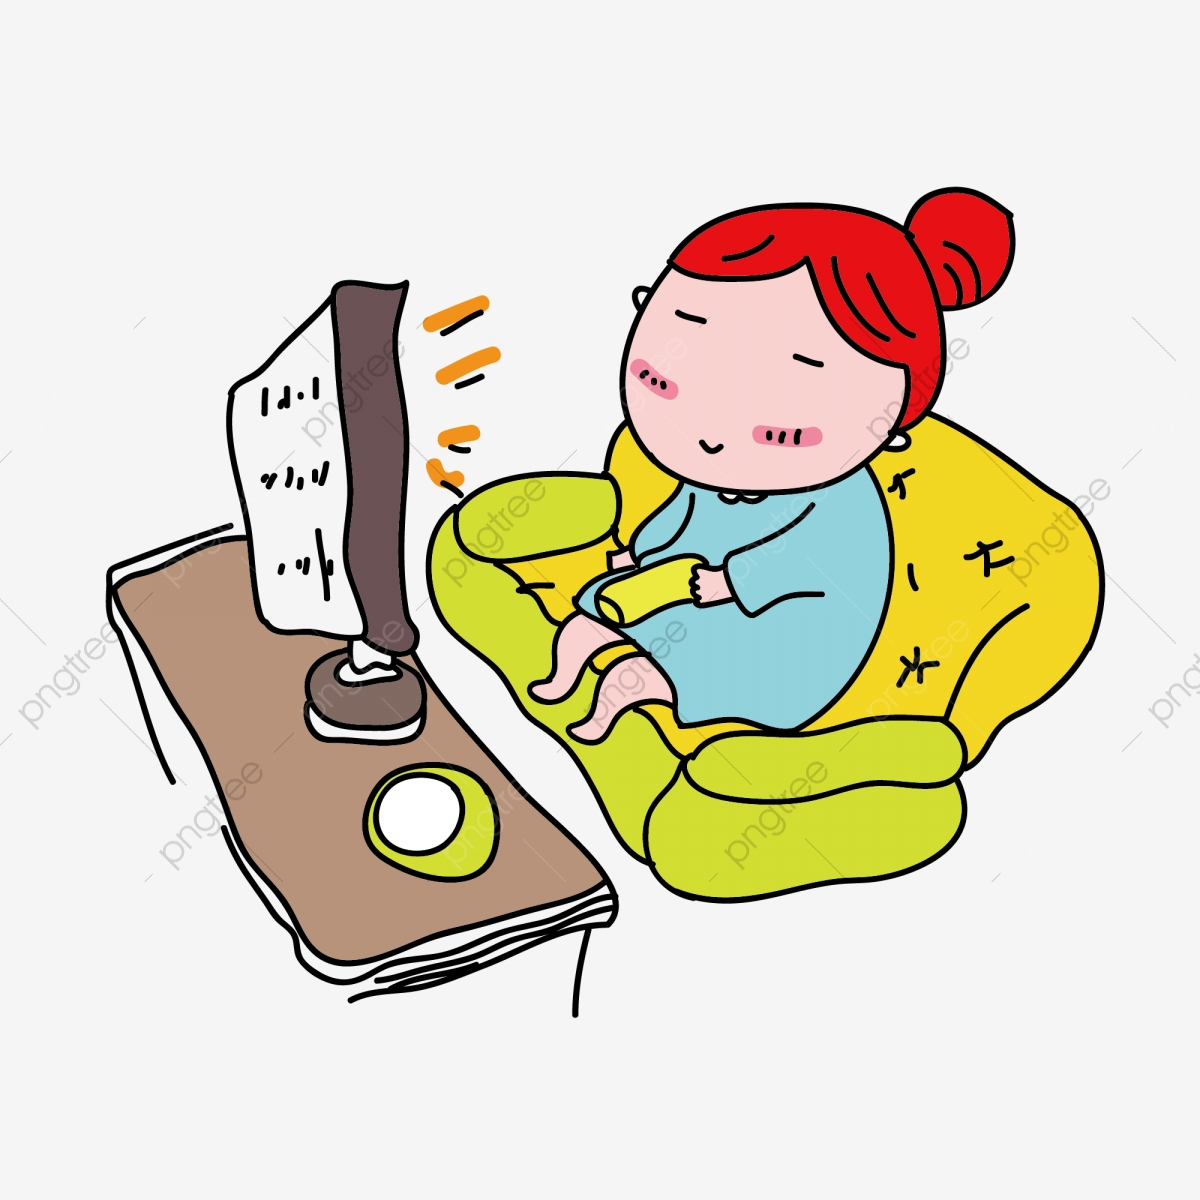 Cartoon Girl Watching Tv Is A Commercial Element, Watch Tv.